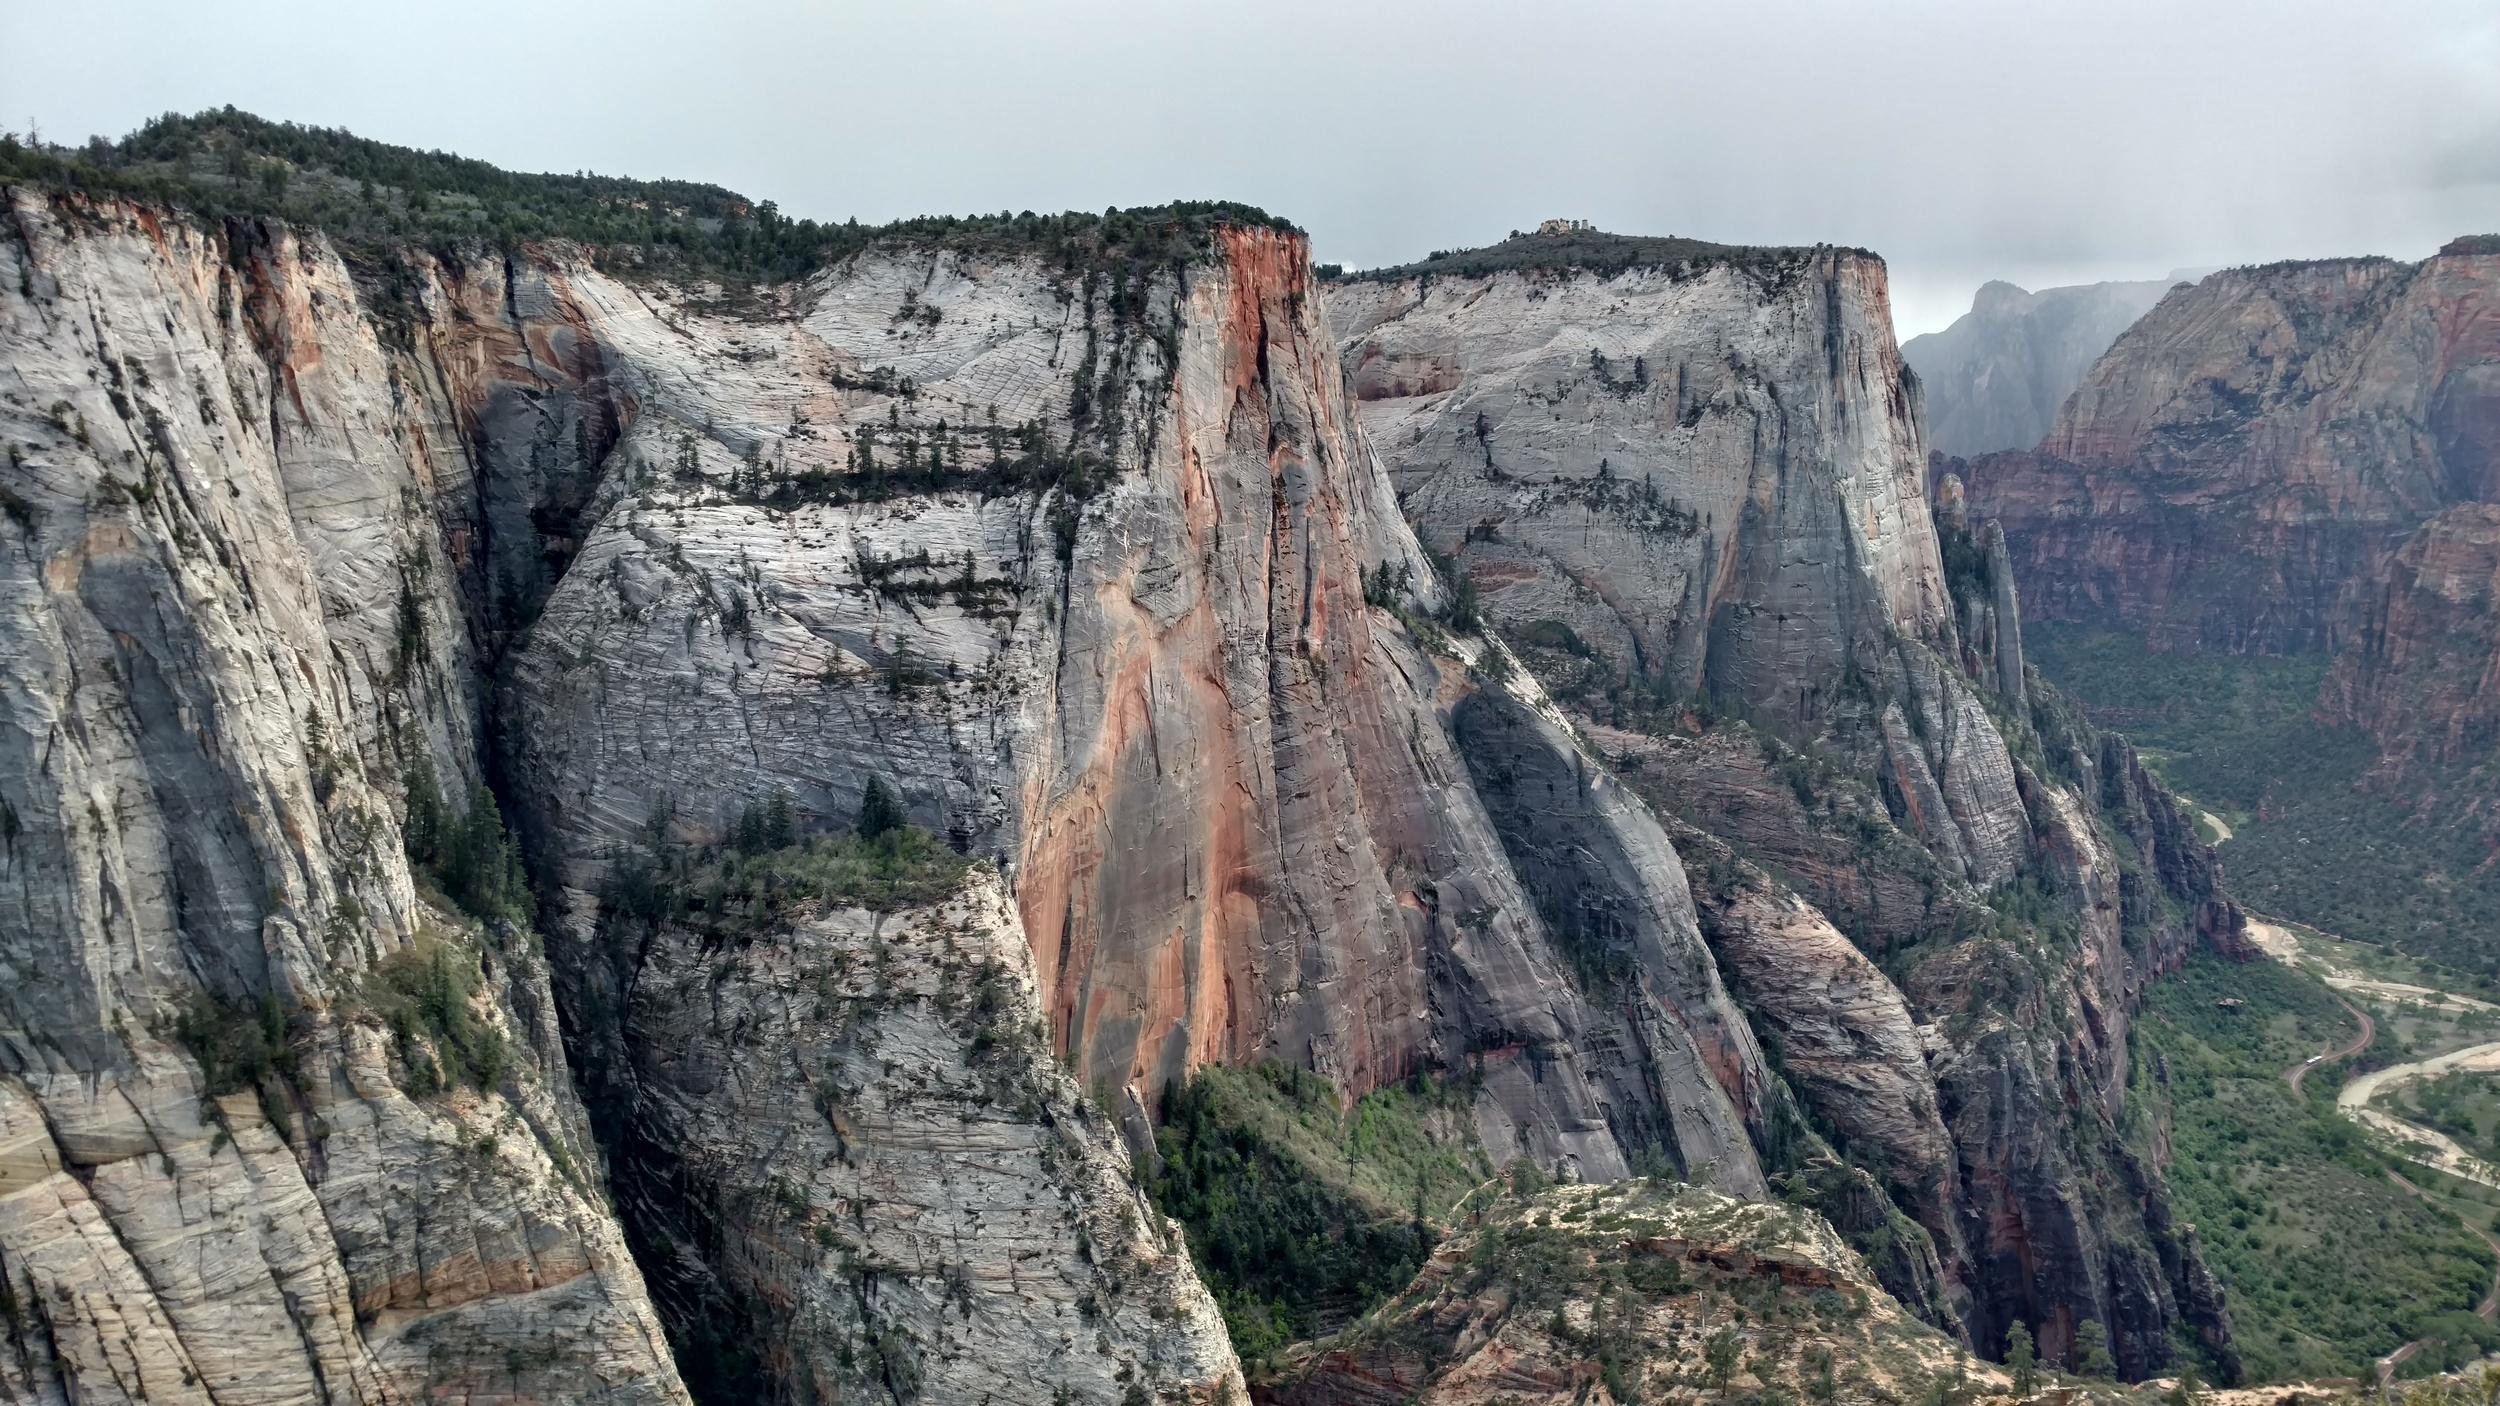 Wet sandstone of Cable Mountain